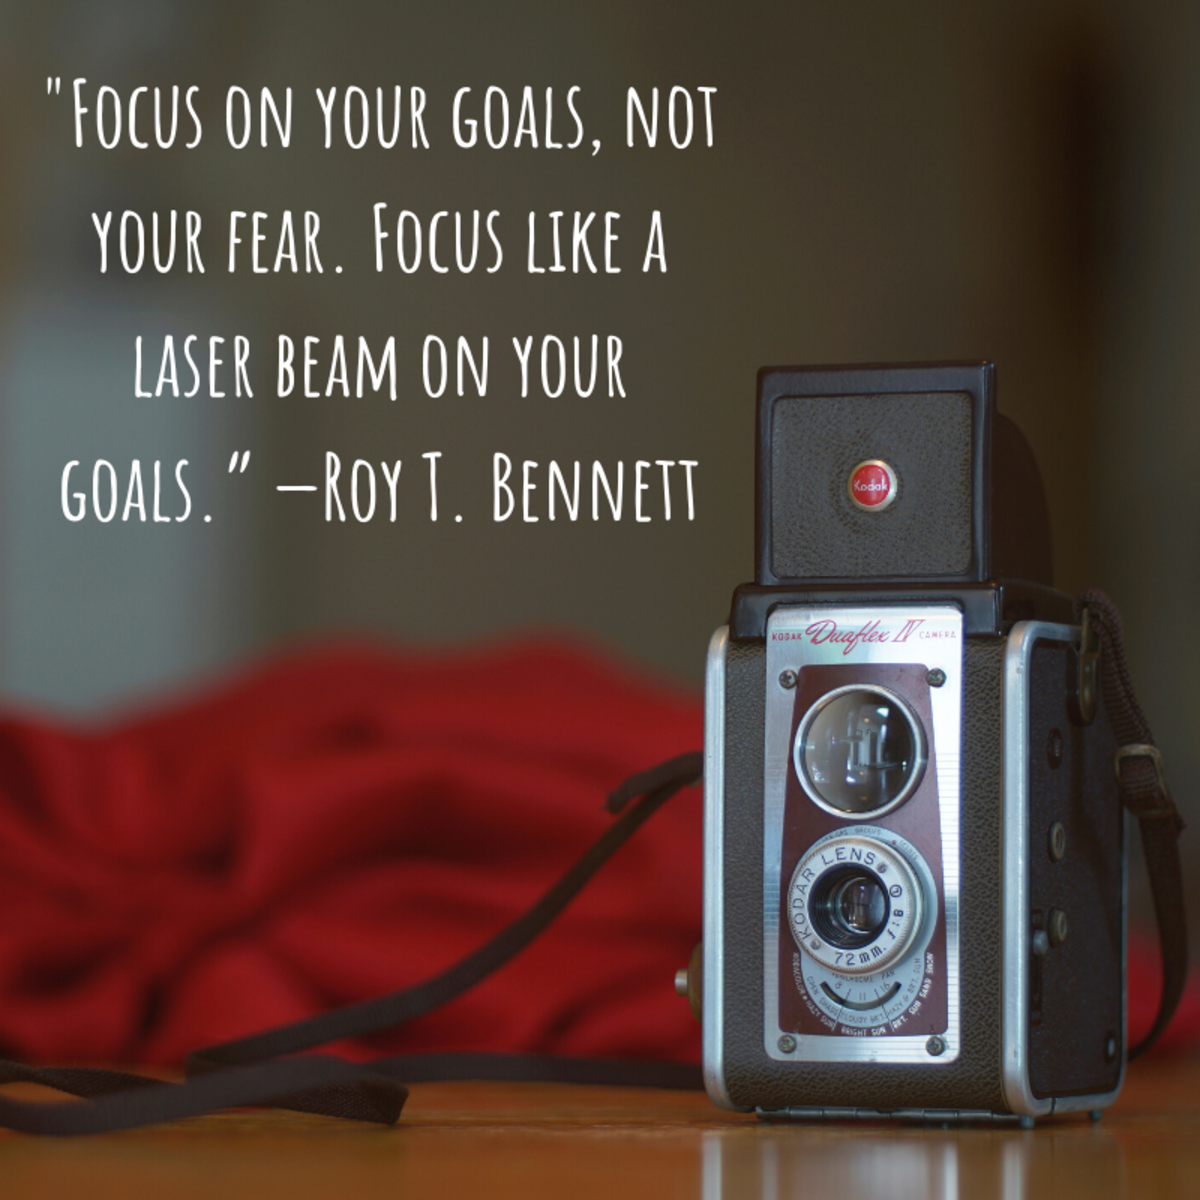 """Focus on your goals, not your fear. Focus like a laser beam on your goals."" —Roy T. Bennett"